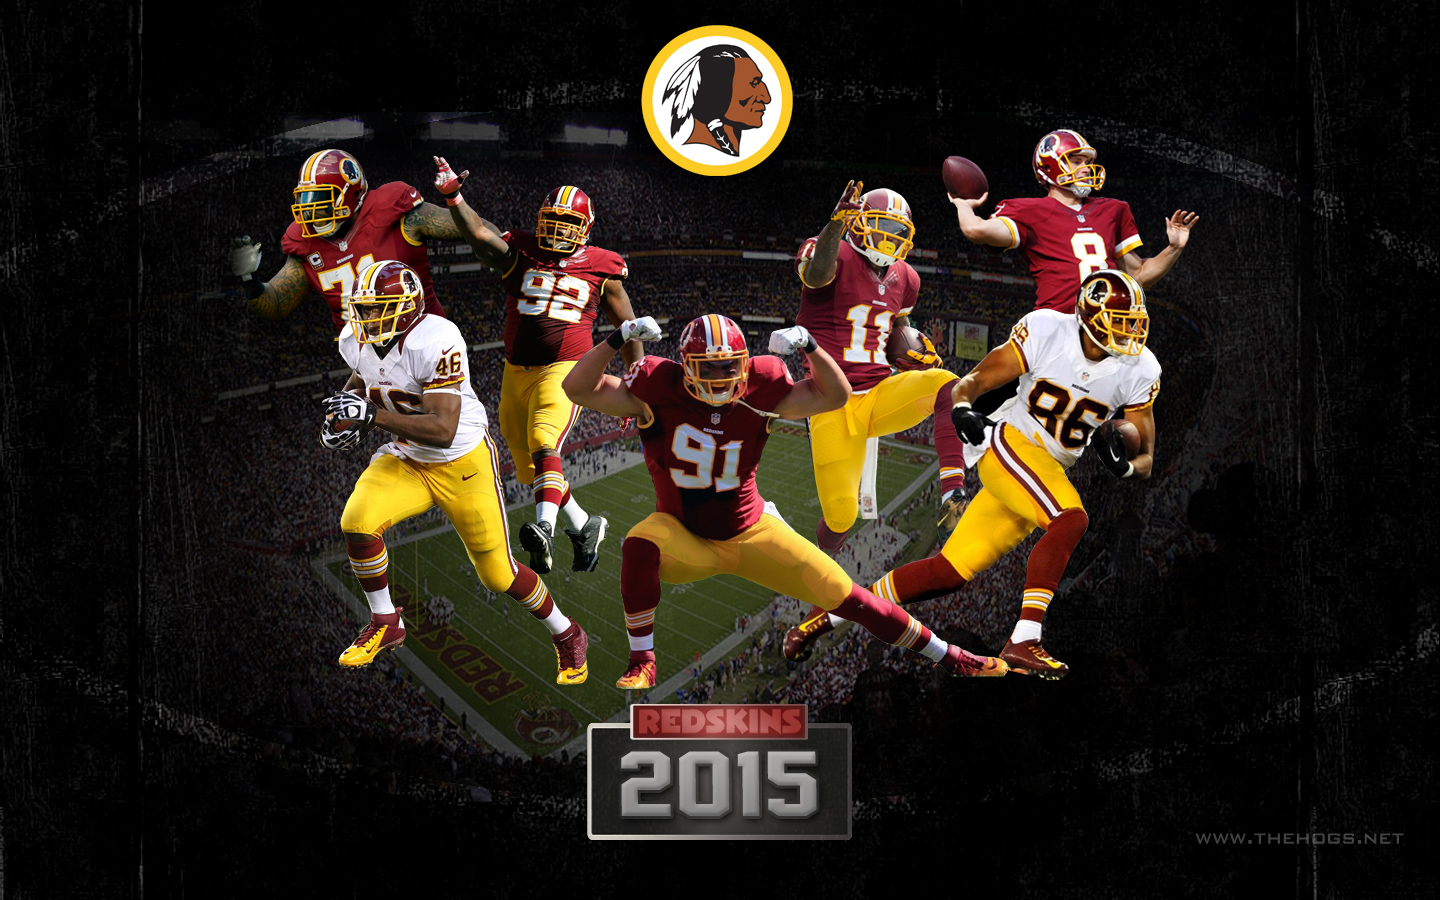 Washington Redskins wallpapers Recommend You This Great Picture